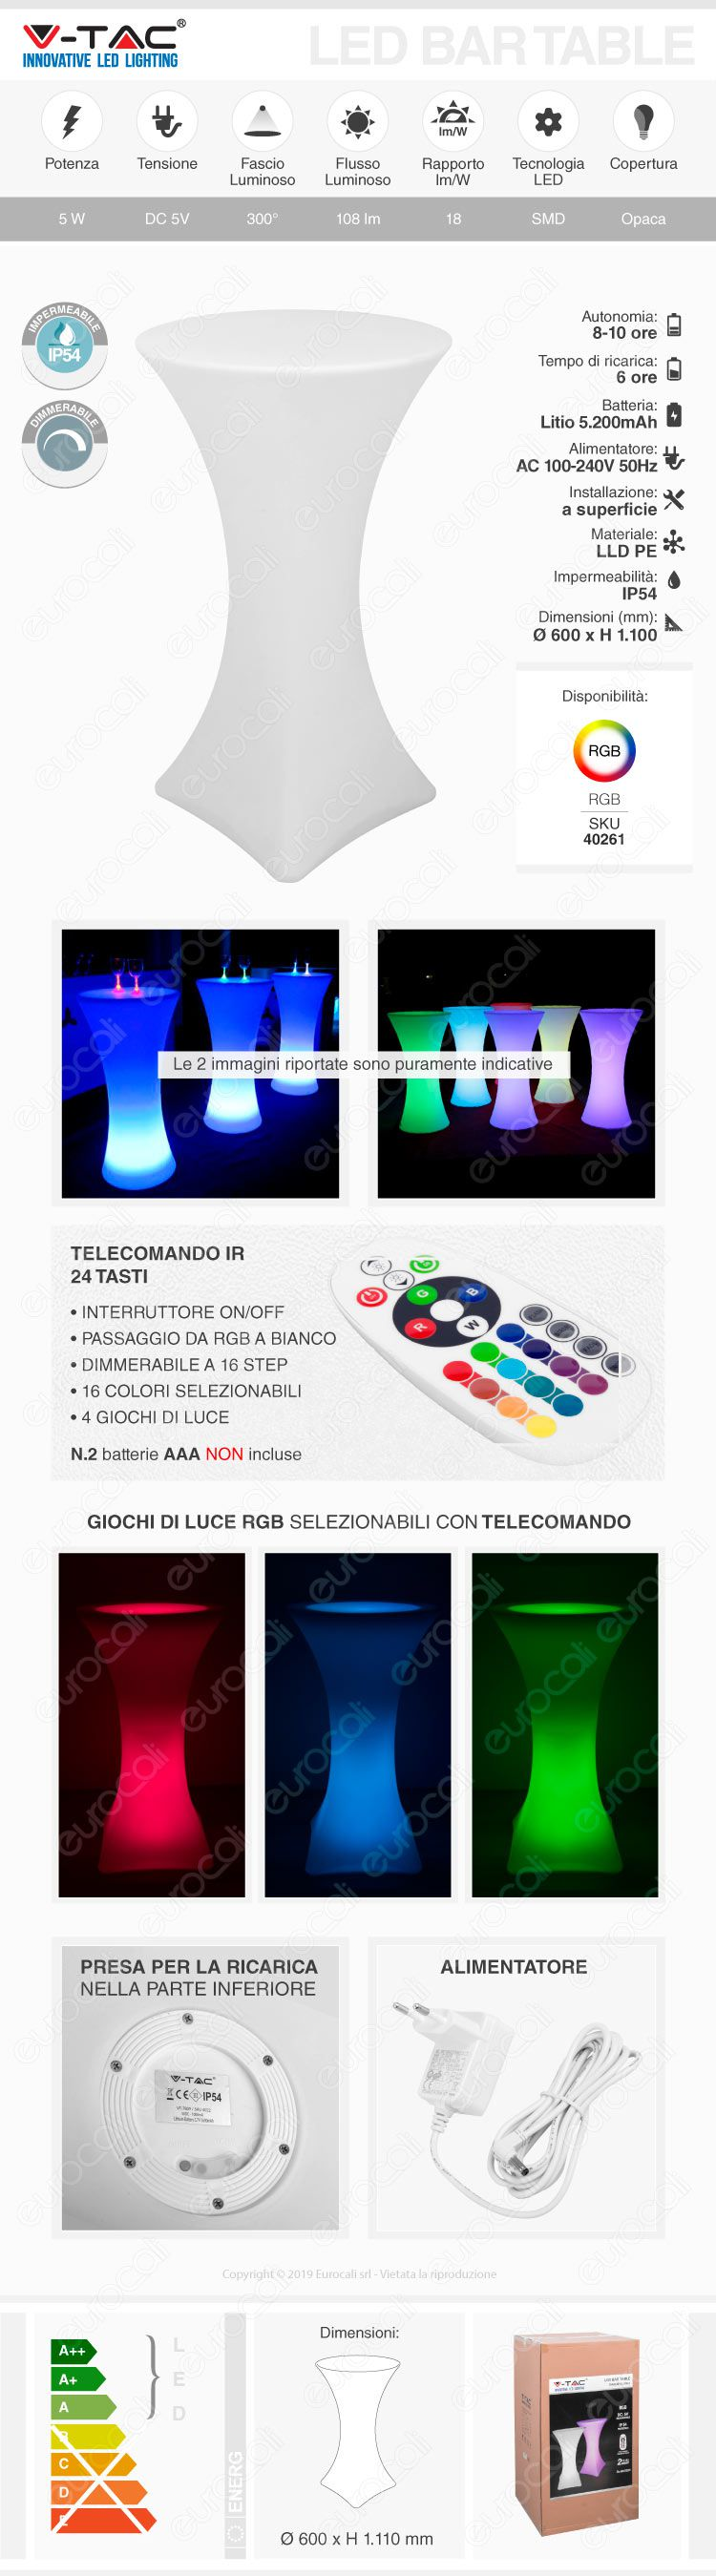 V-TAC bar table rgb 5w